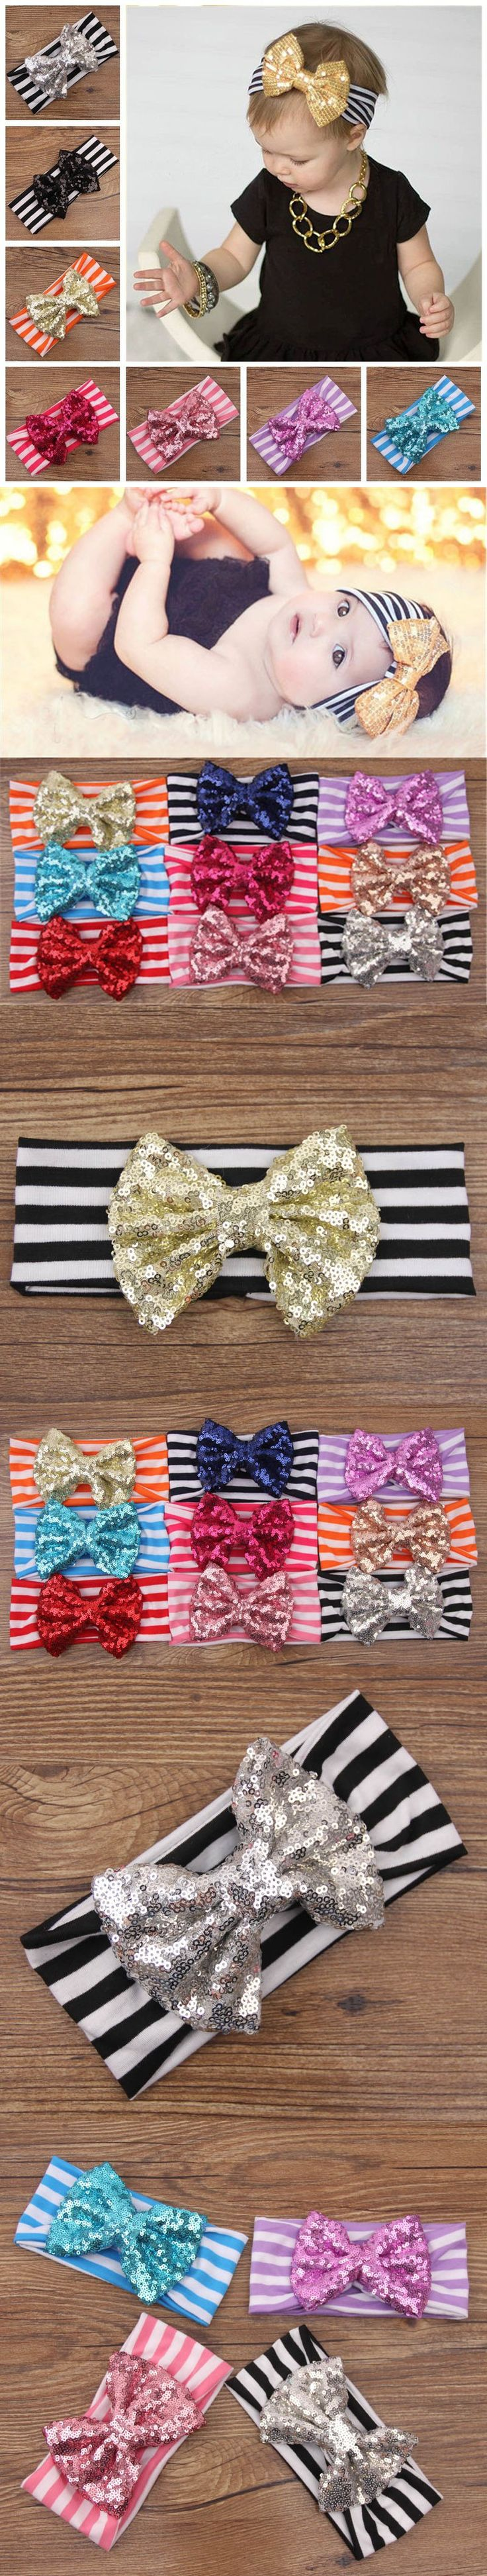 Be best hair accessories for baby - New Fashion Baby Headbands Hair Band Turban Big Bow Baby Hair Accessories Sequined Bow Christmas Child